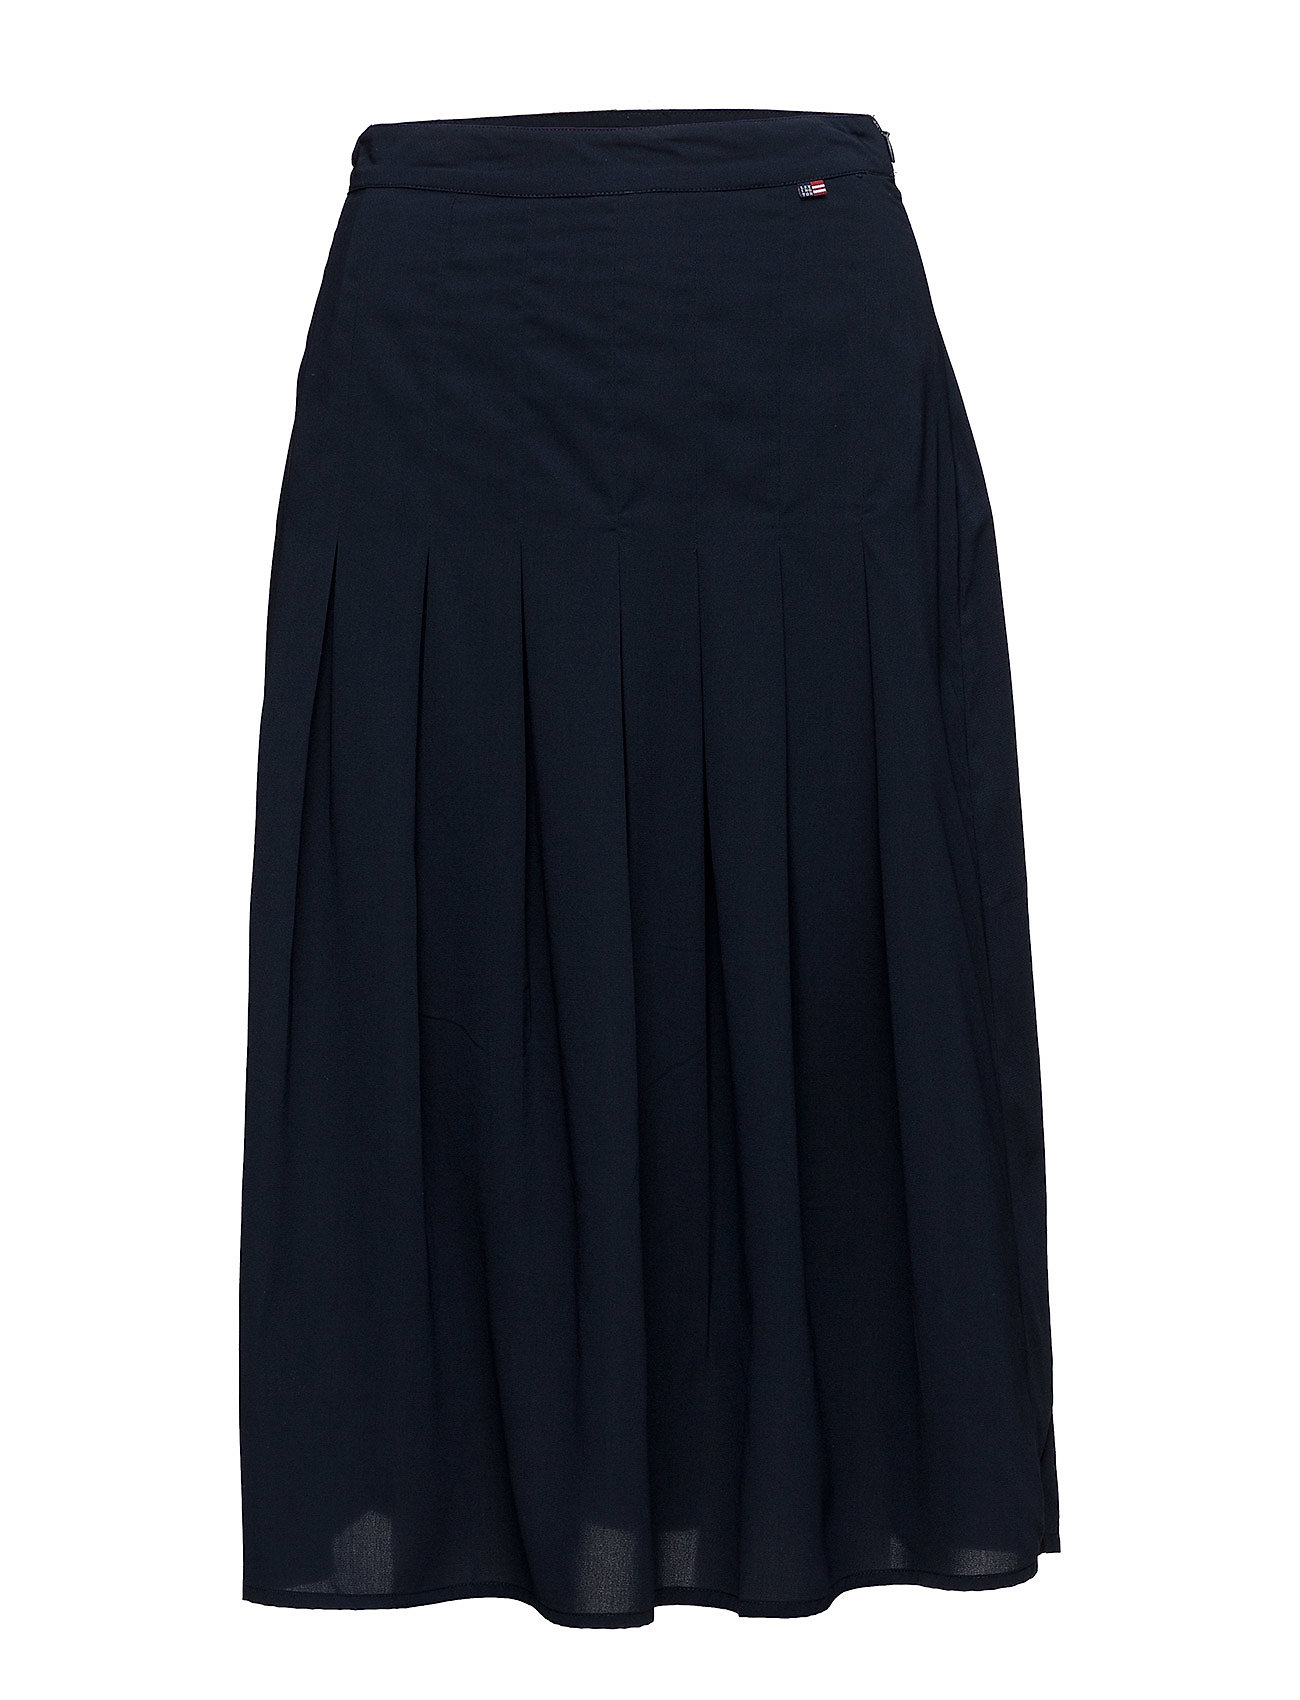 Lexington Clothing Amanda Plisse Skirt - Deepest Blue